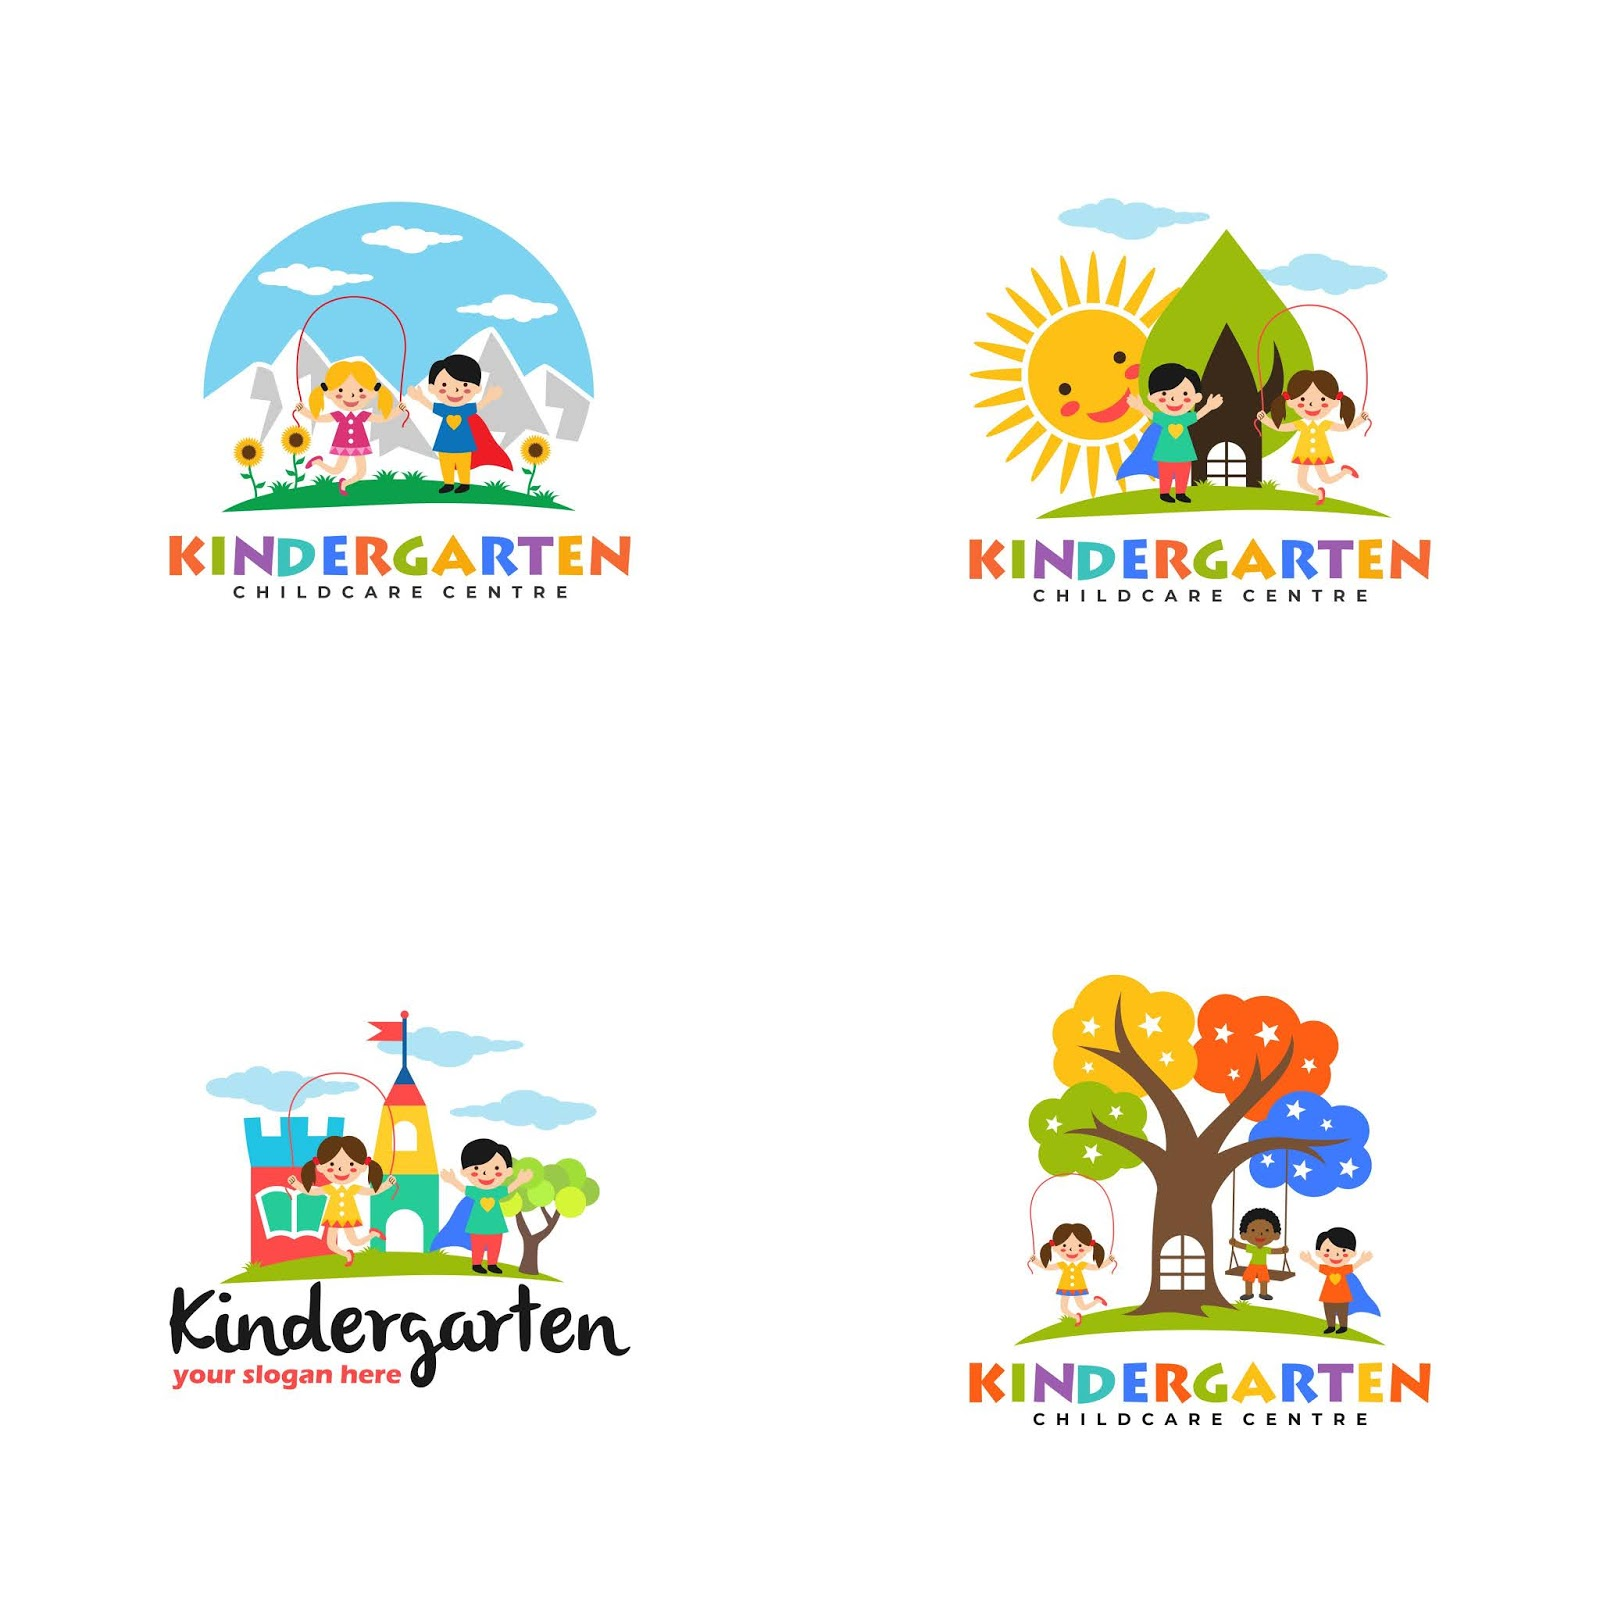 Kindergarten Logo Free Download Vector CDR, AI, EPS and PNG Formats